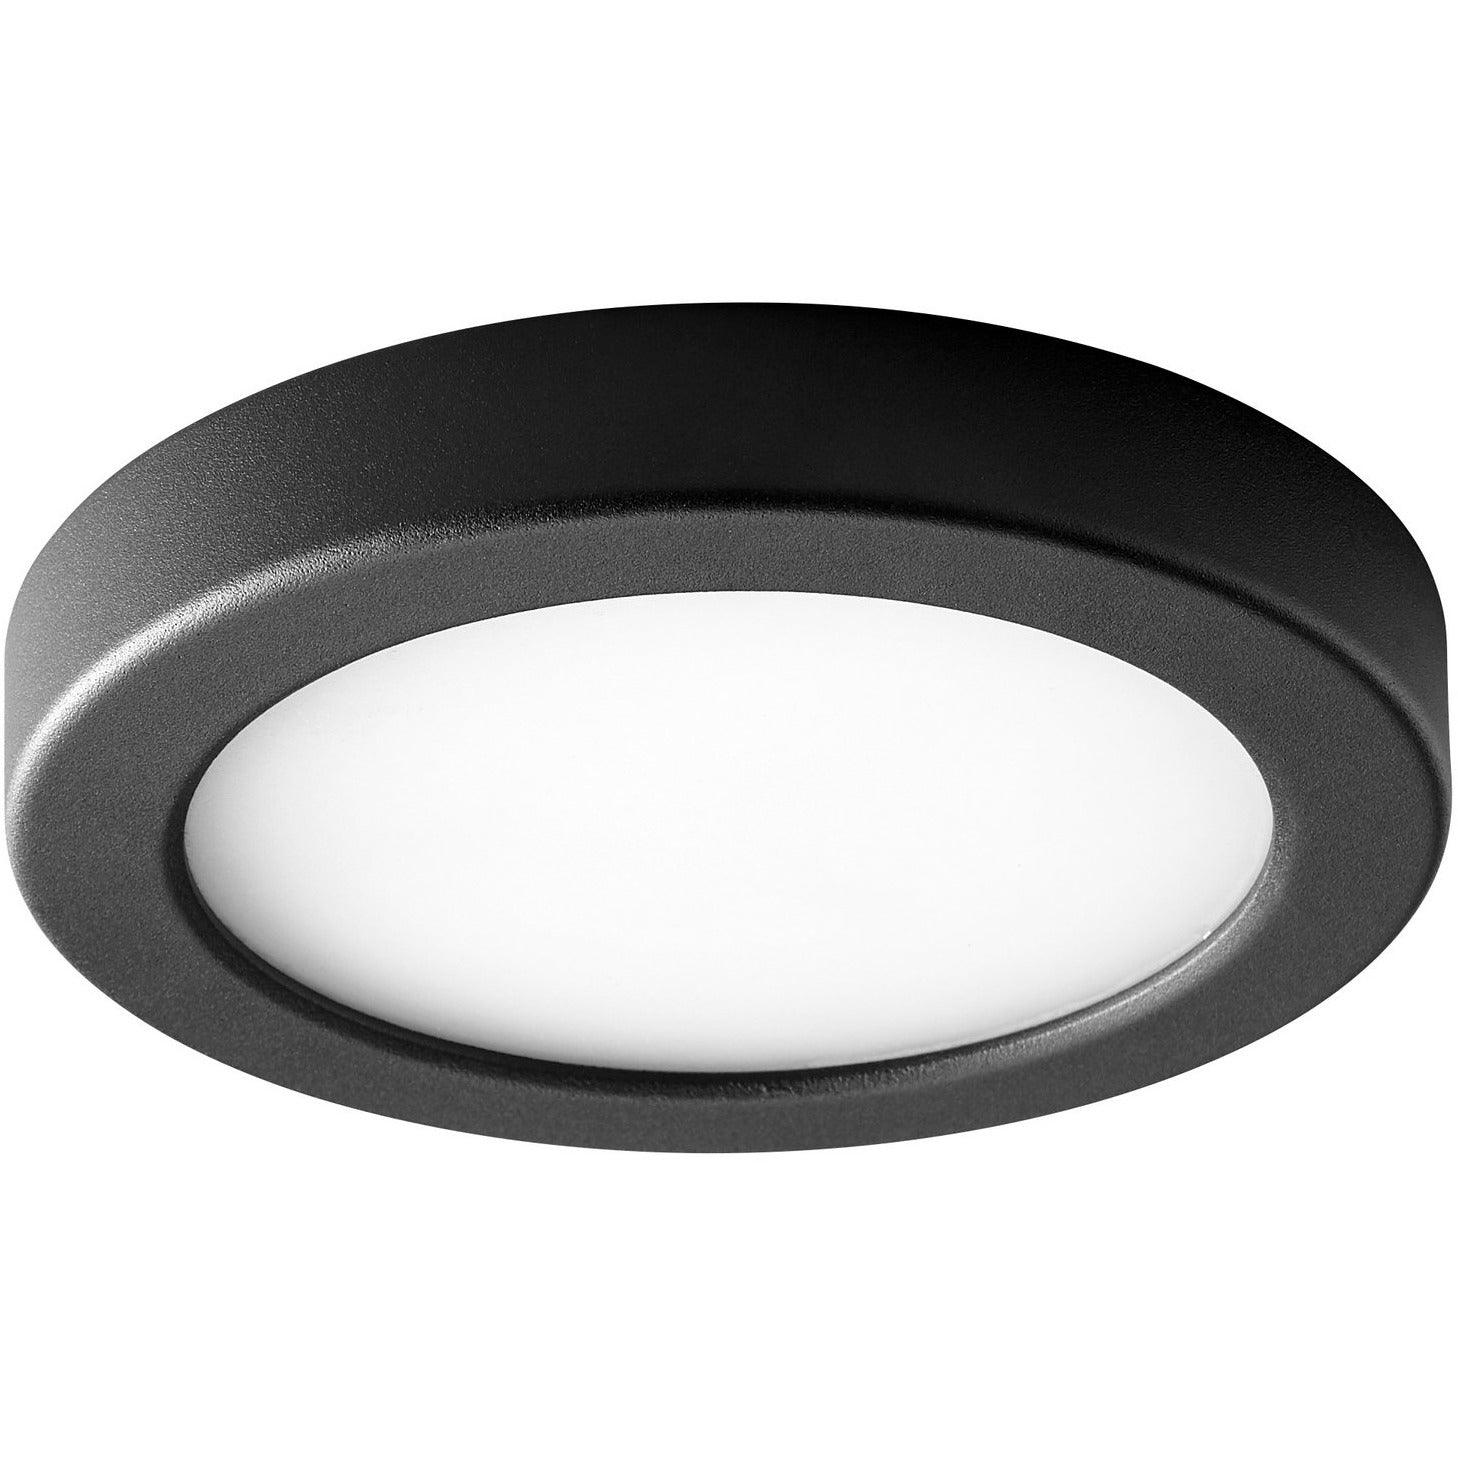 Oxygen - 3-645-15 - LED Ceiling Mount - Elite - Black